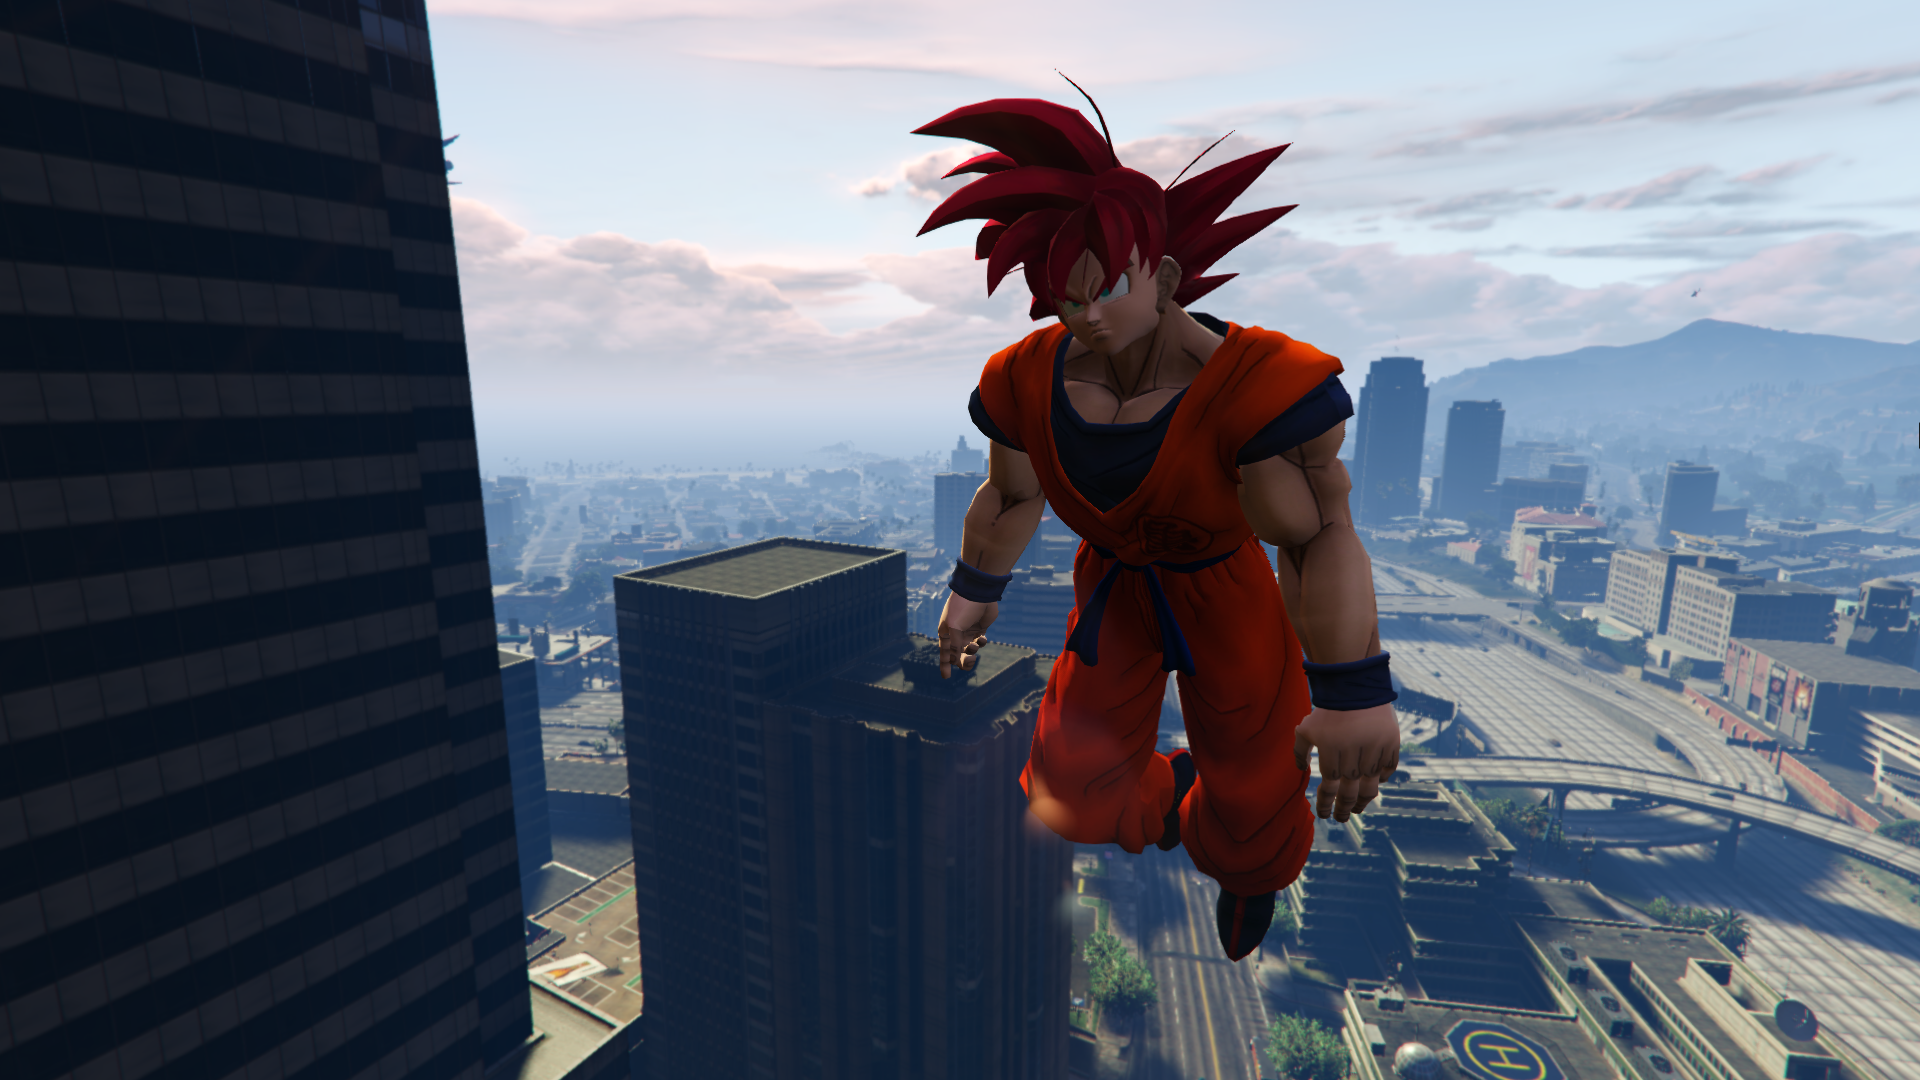 Dragon ball z goku gta5 - Images dragon ball z ...